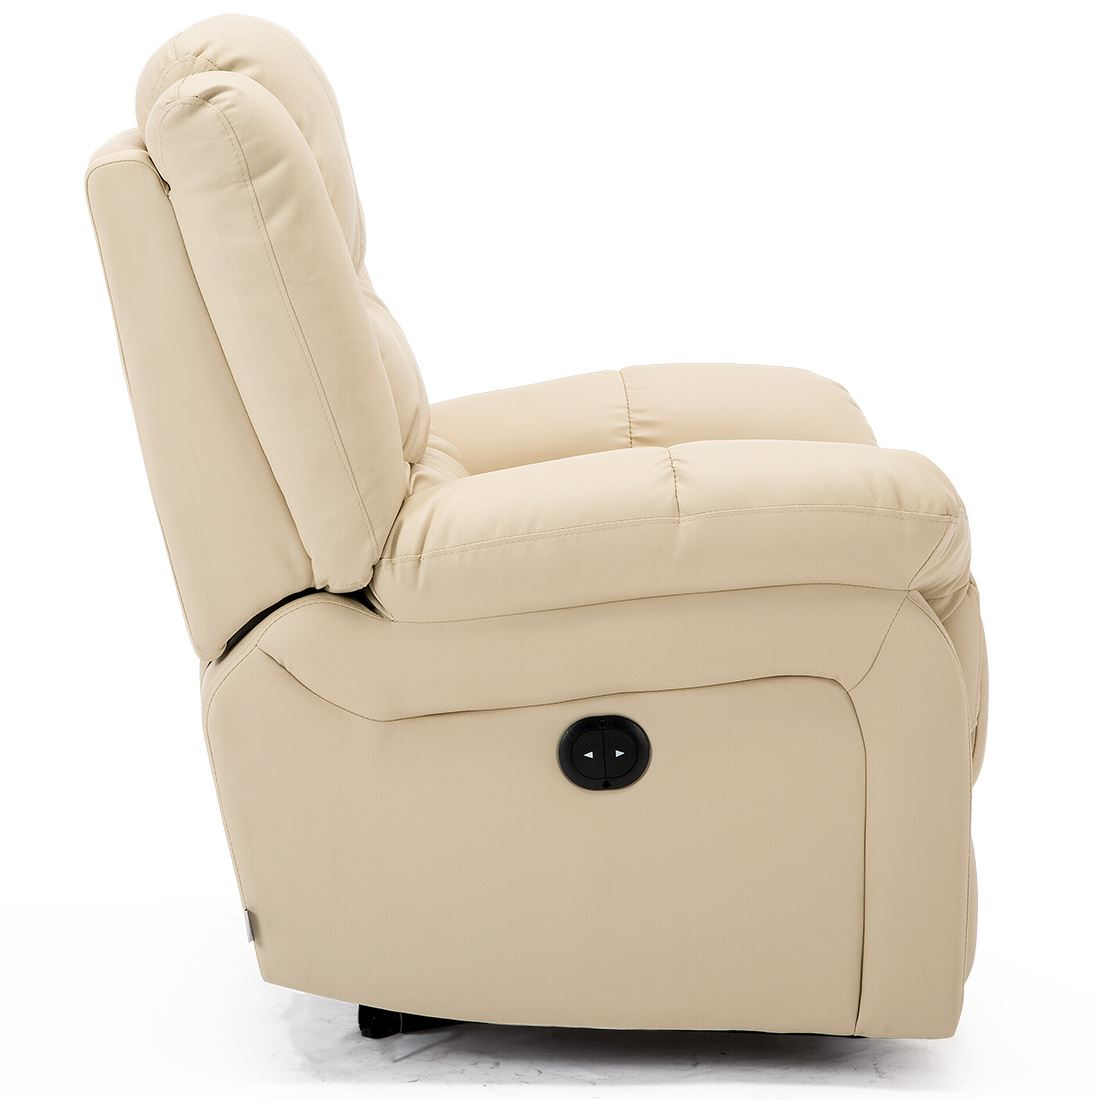 electric recliner sofa not working gambar cina seattle leather auto armchair home